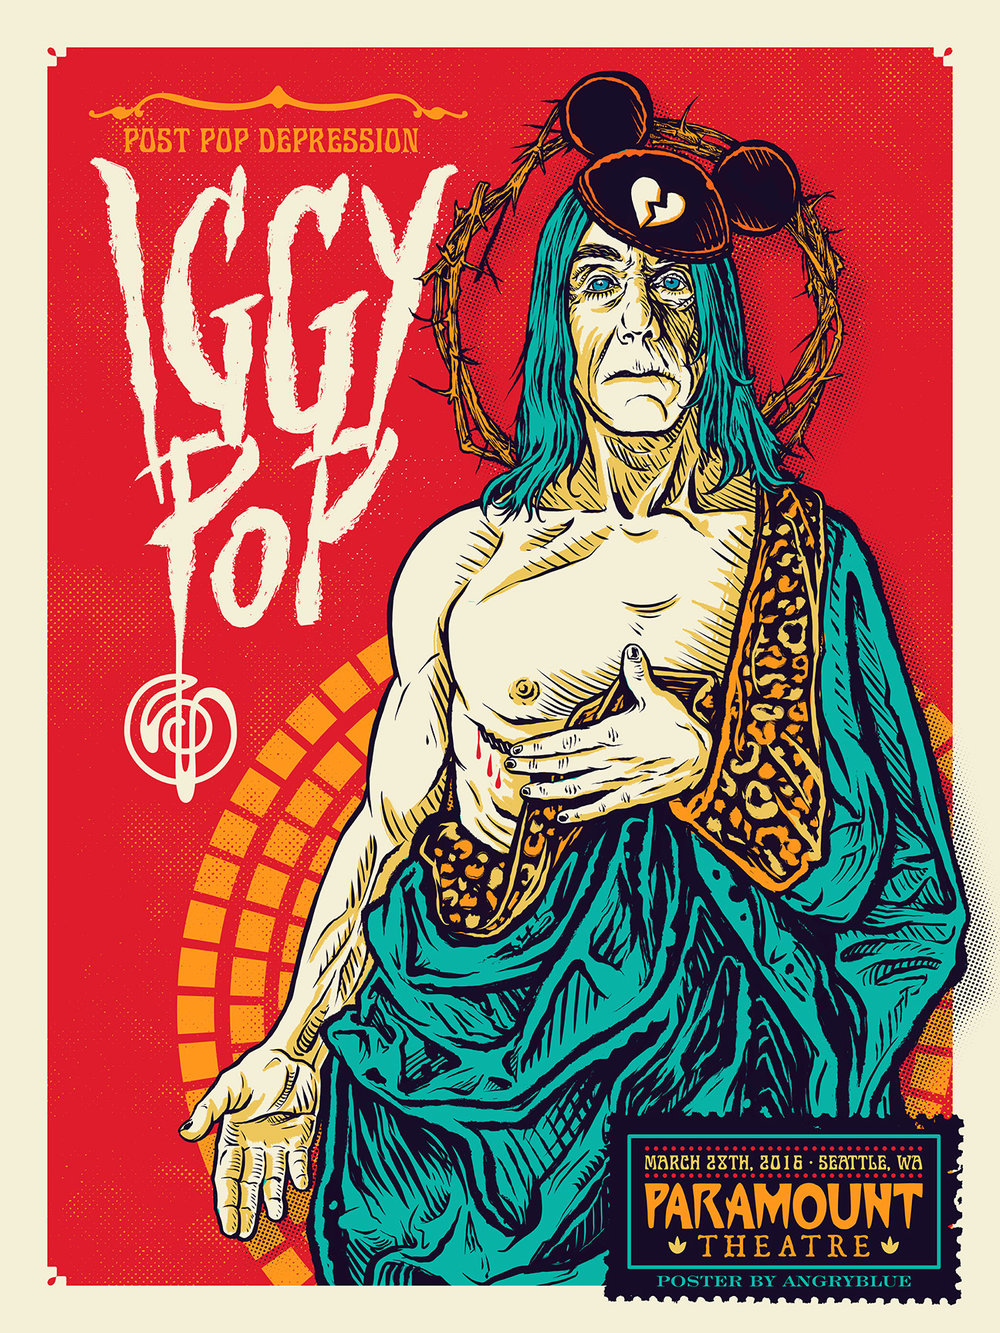 I love the idea of Saint Iggy Pop. This show was accidentally the day after Easter.